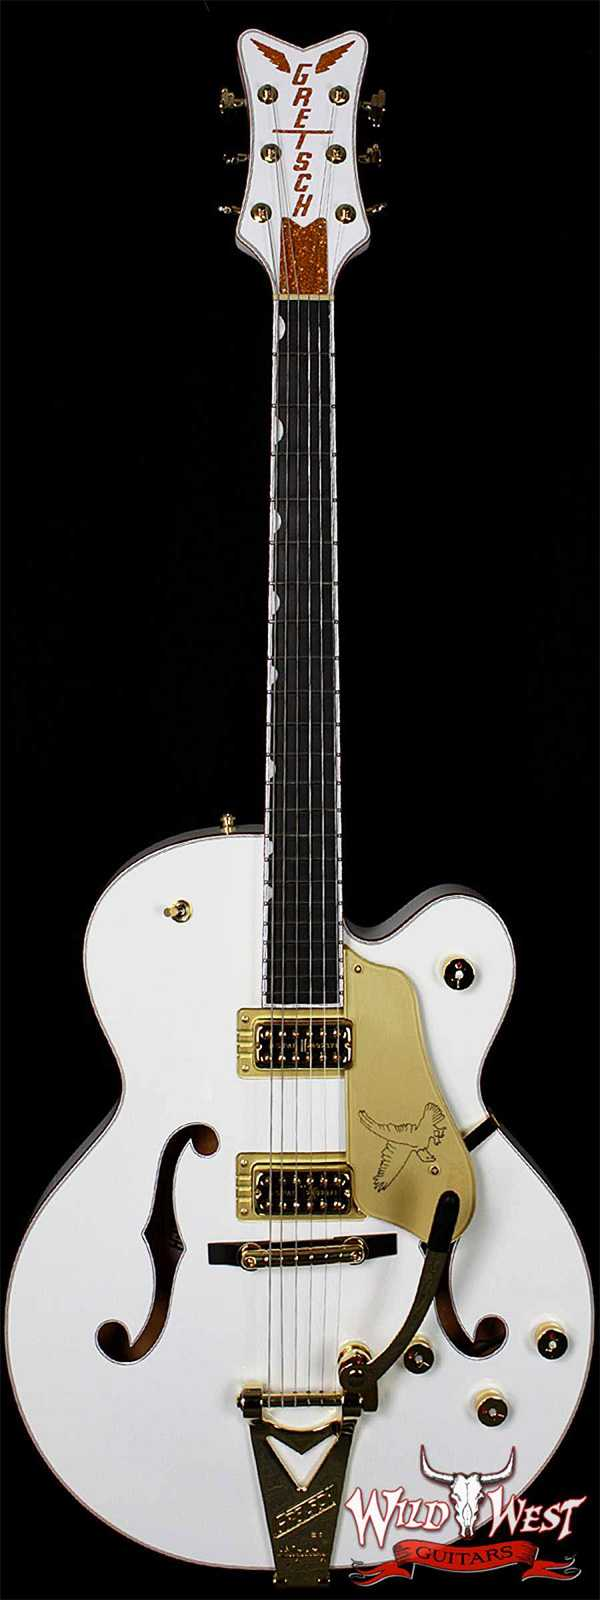 Gretsch Players Edition Falcon with String-Thru Bigsby Filter'Tron Pickups G6136T-WHT